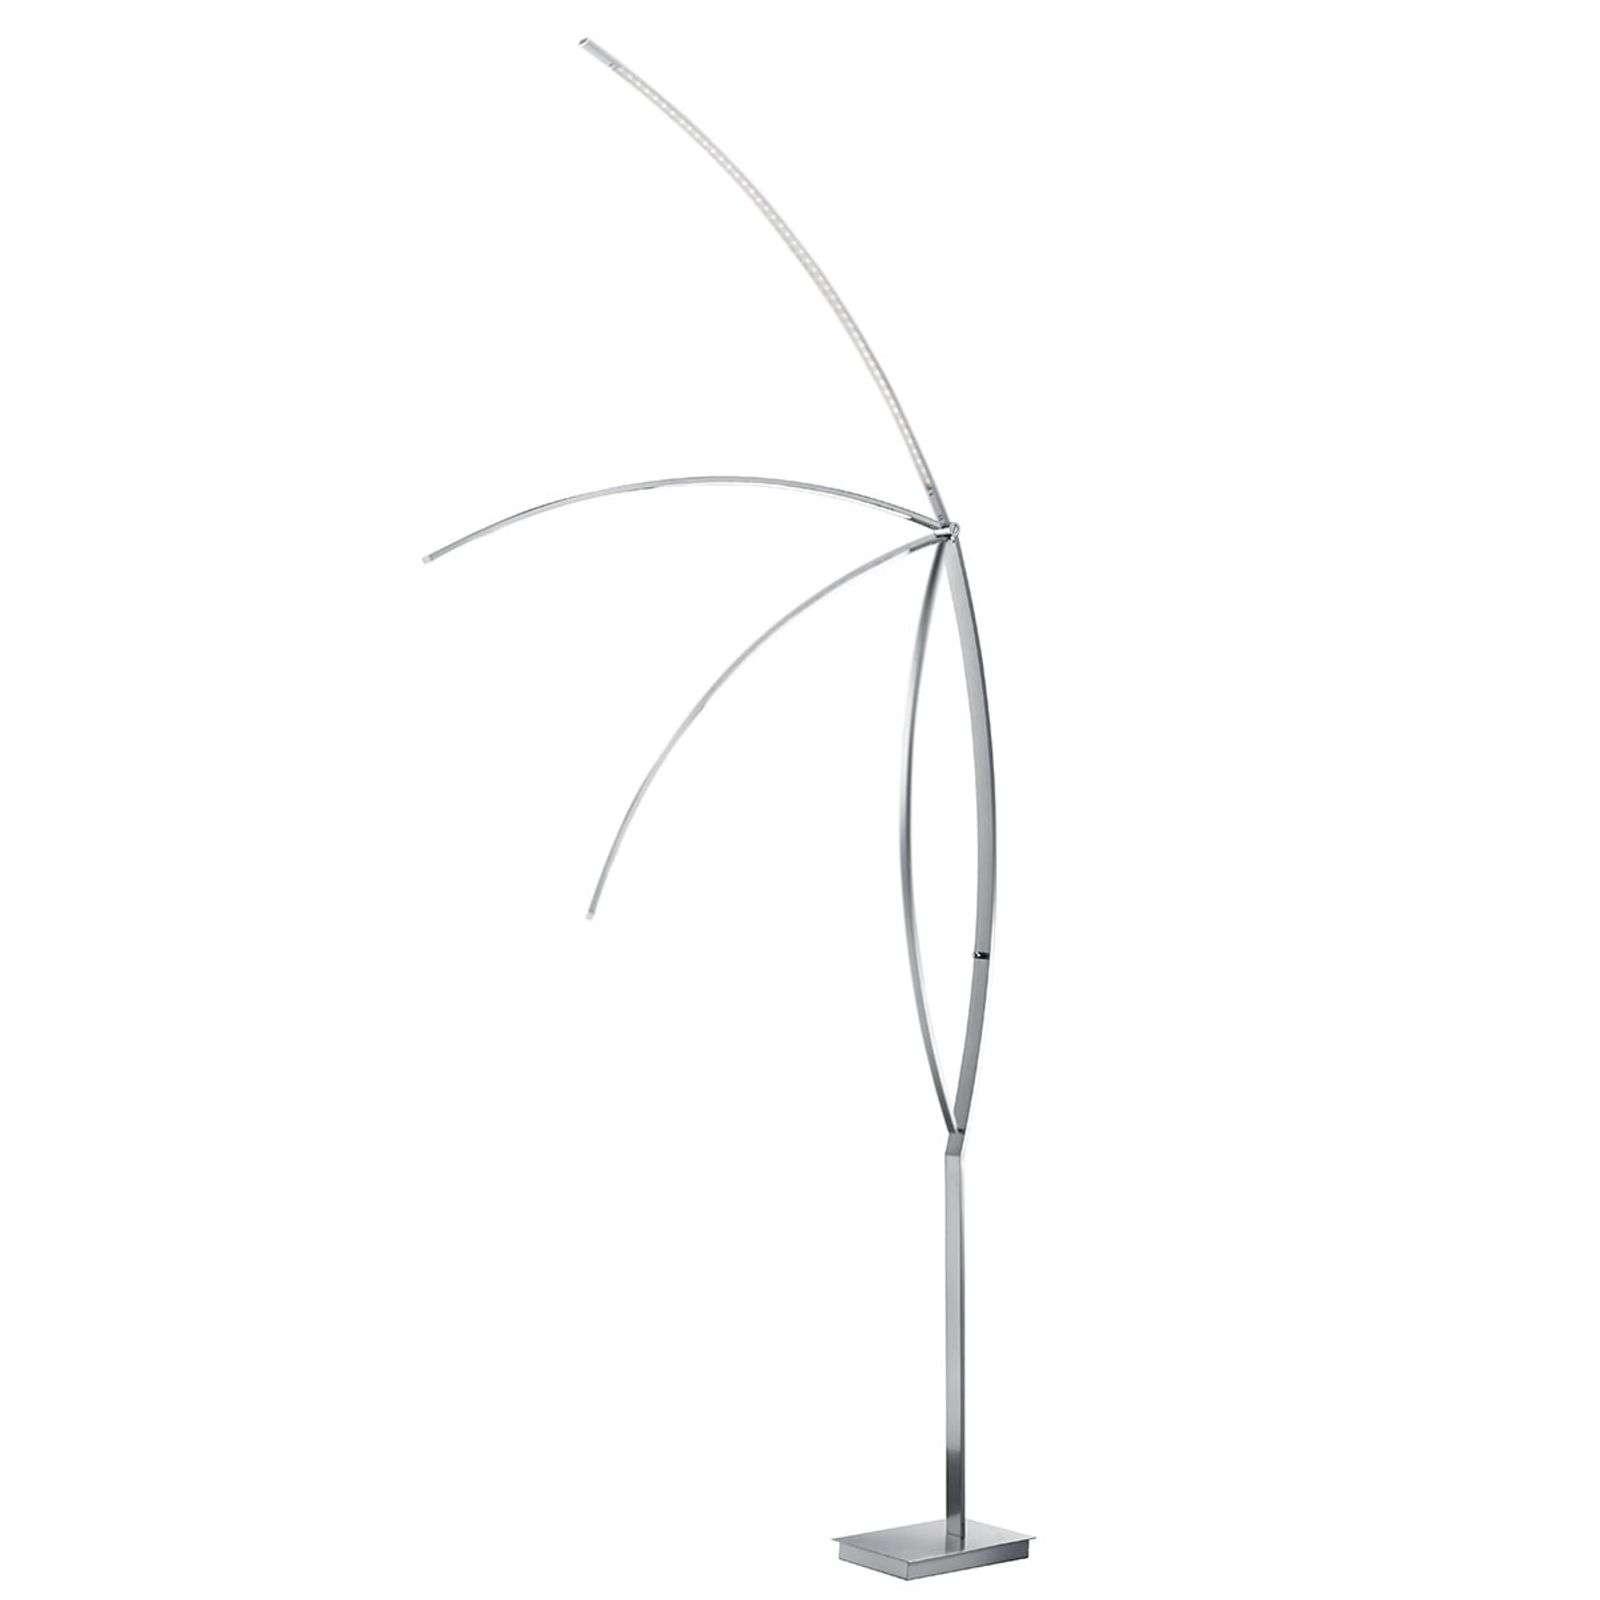 Lampadaire LED Tree pliable, 180 cm